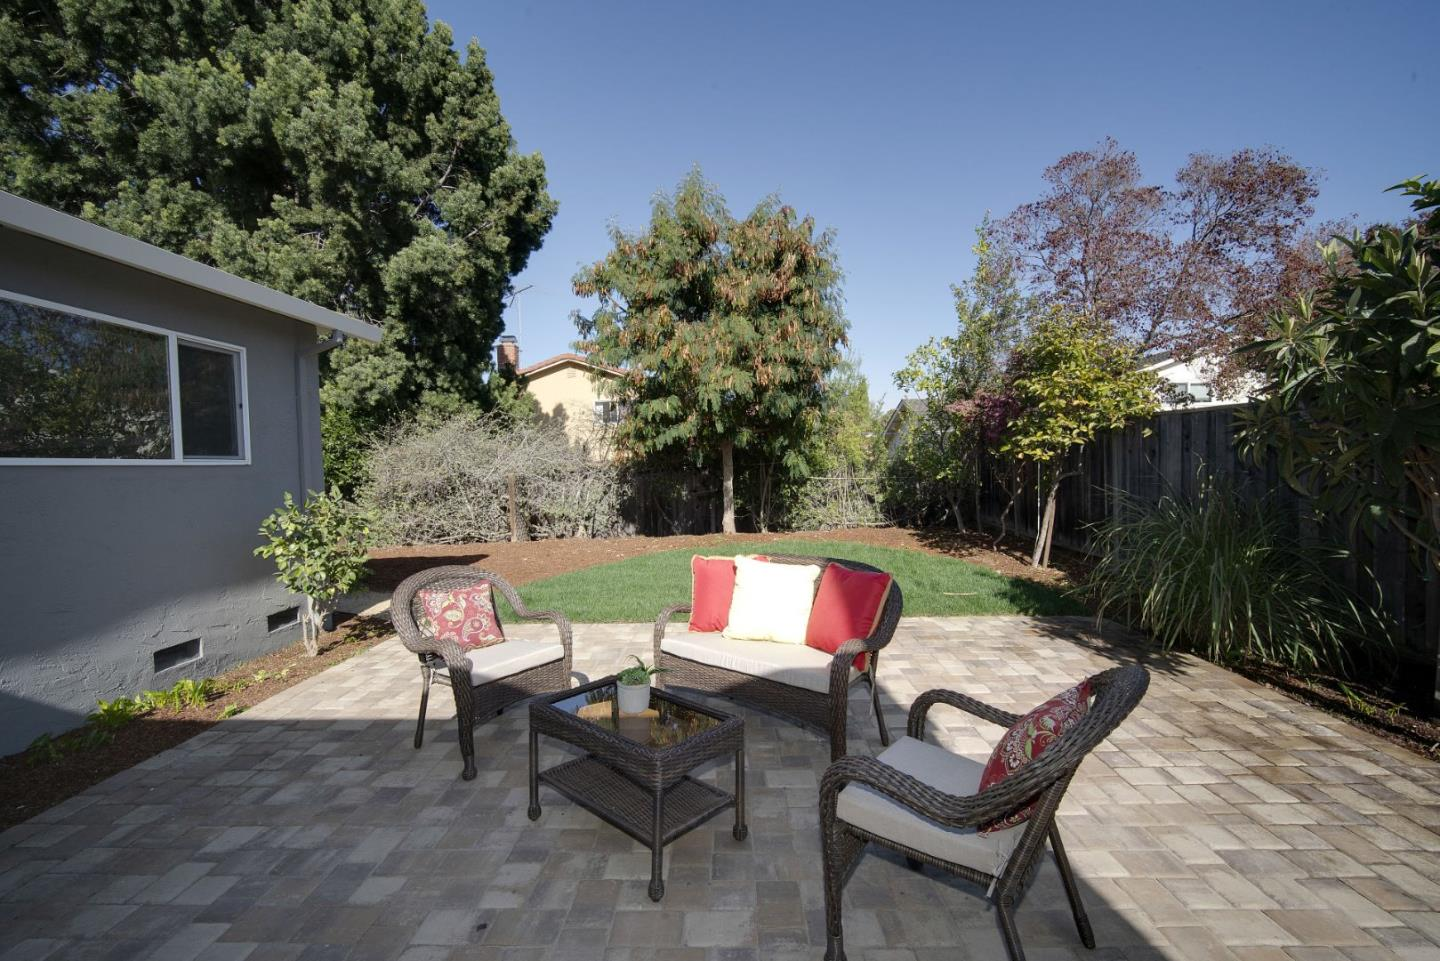 723 Old San Francisco Road Sunnyvale, CA 94086 - MLS #: ML81730527